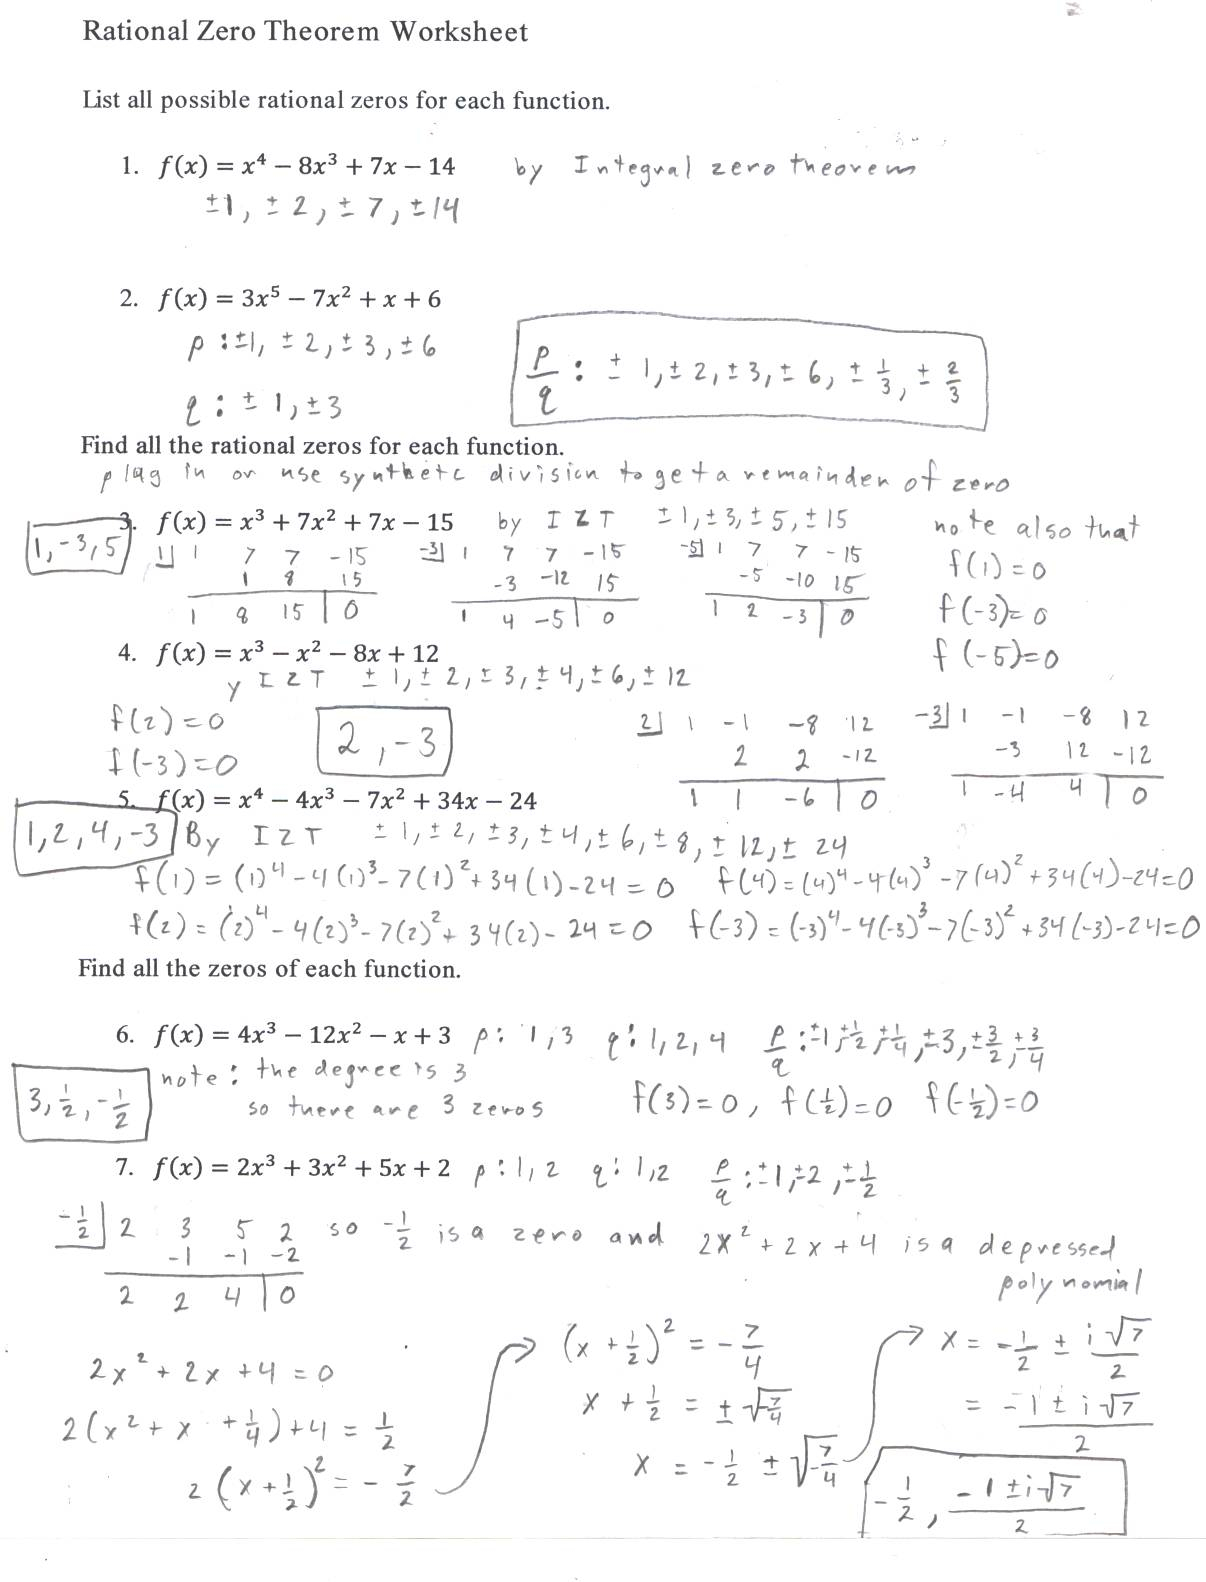 Synthetic Division Worksheet Algebra 2